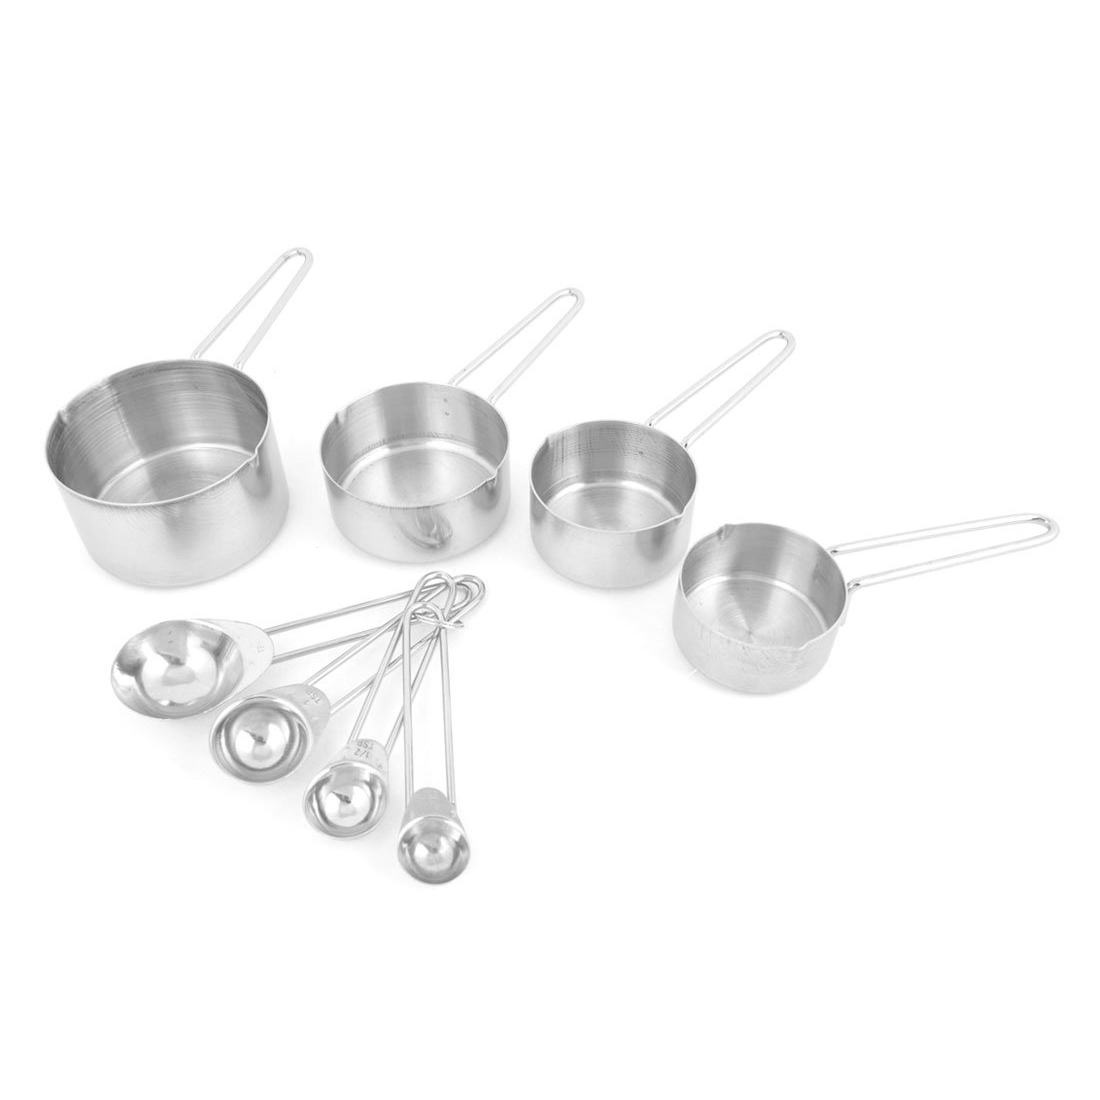 Kitchen Baking Cooking Stainless Steel Measuring Spoon Cup